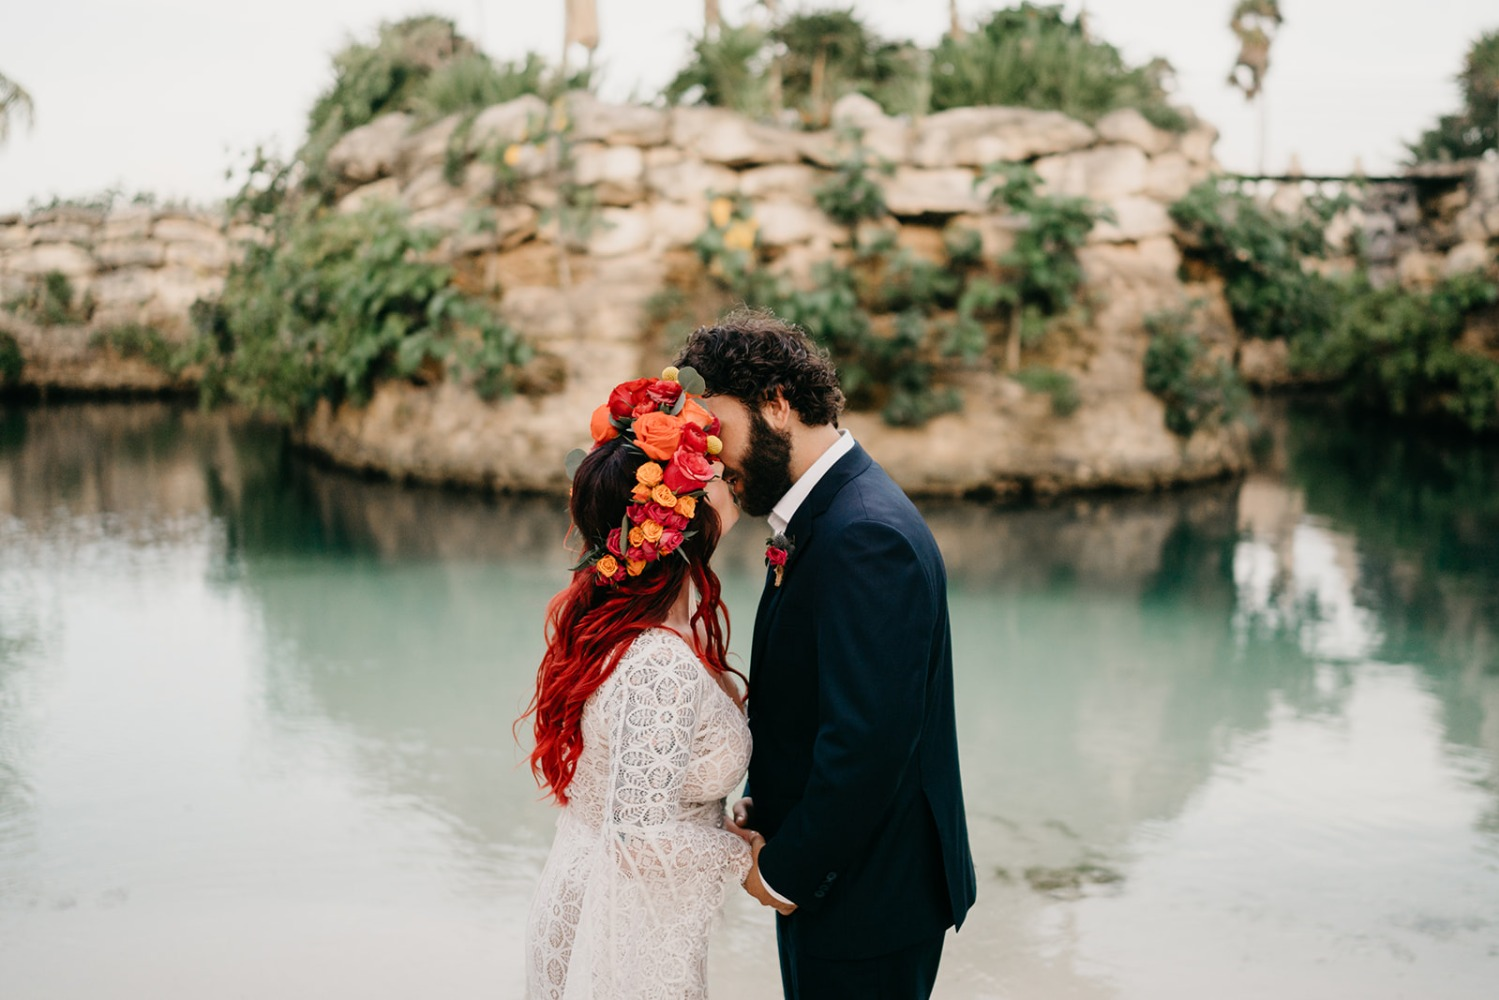 Frida Kahlo Inspired wedding